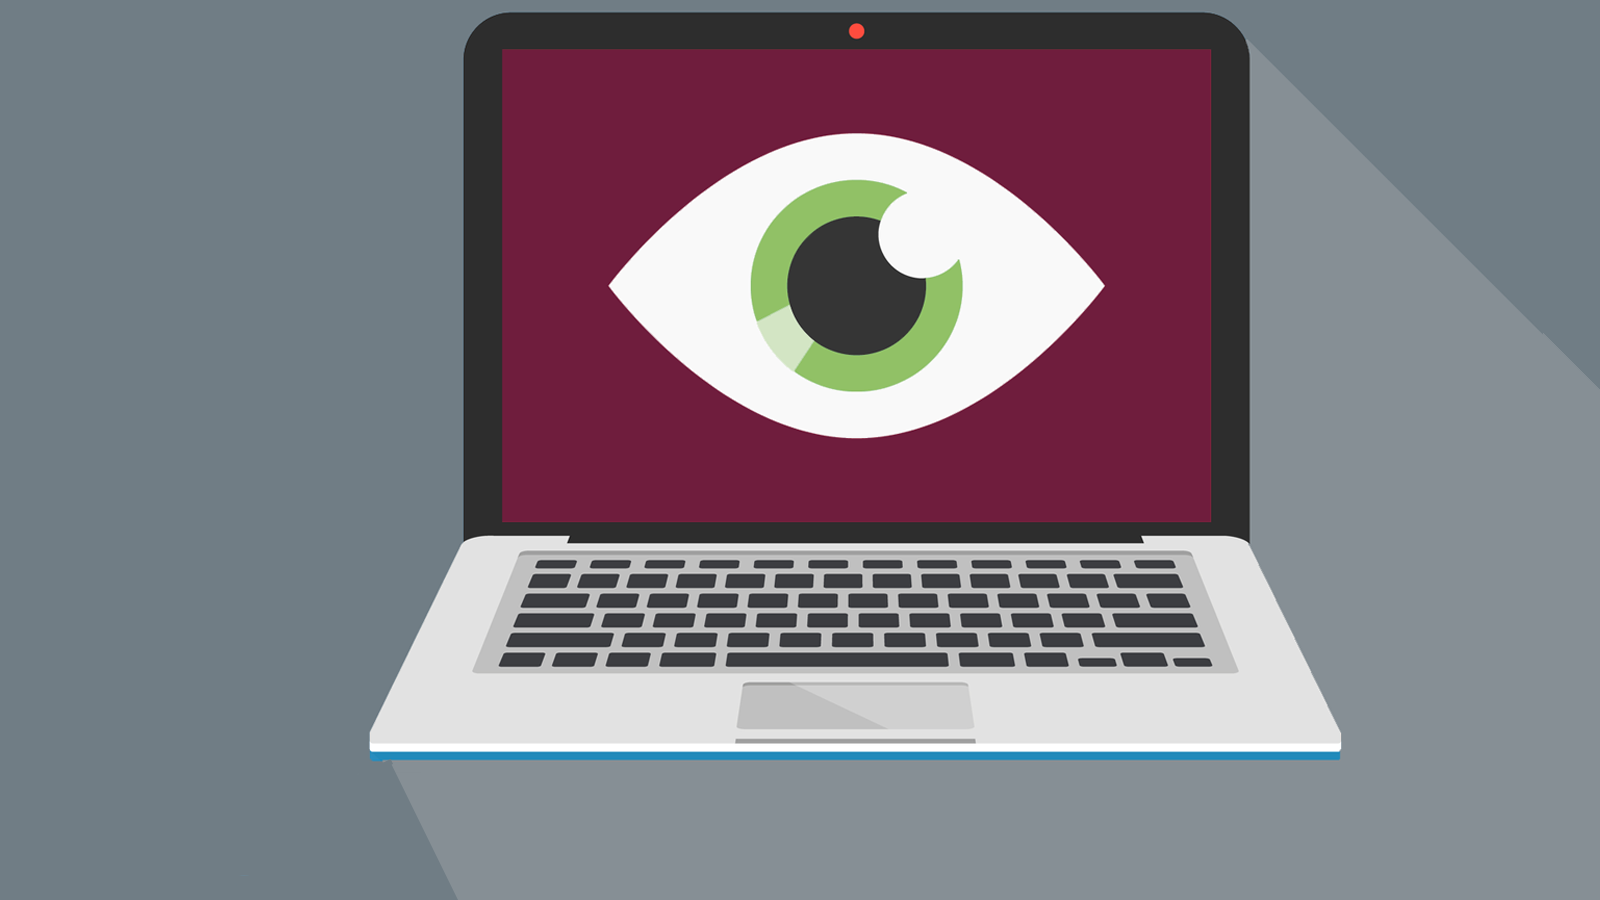 Illustration of green eye on burgundy laptop screen.